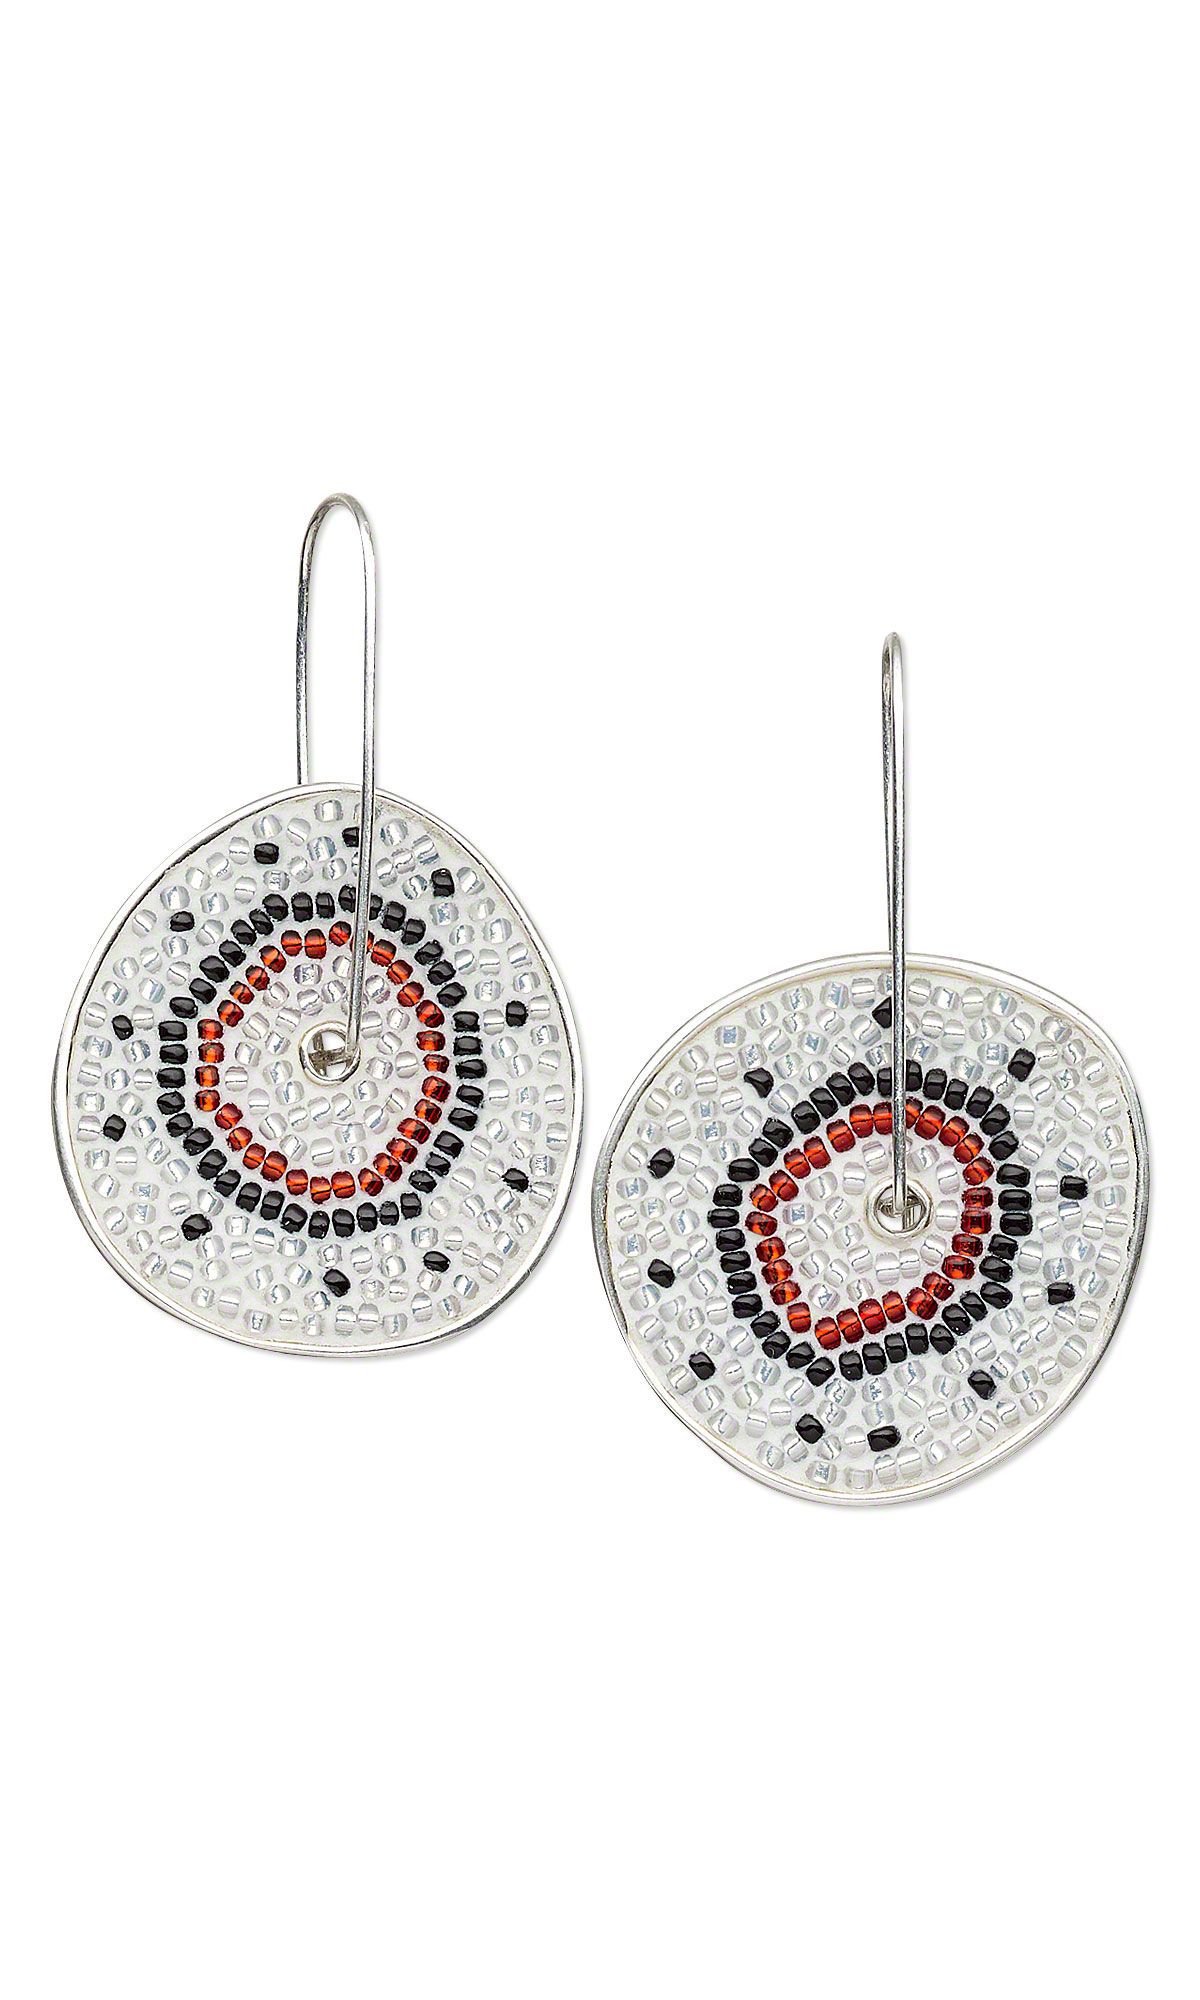 Jewelry Design - Earrings with Seed Beads, Devcon Jeweler\'s 2-ton ...